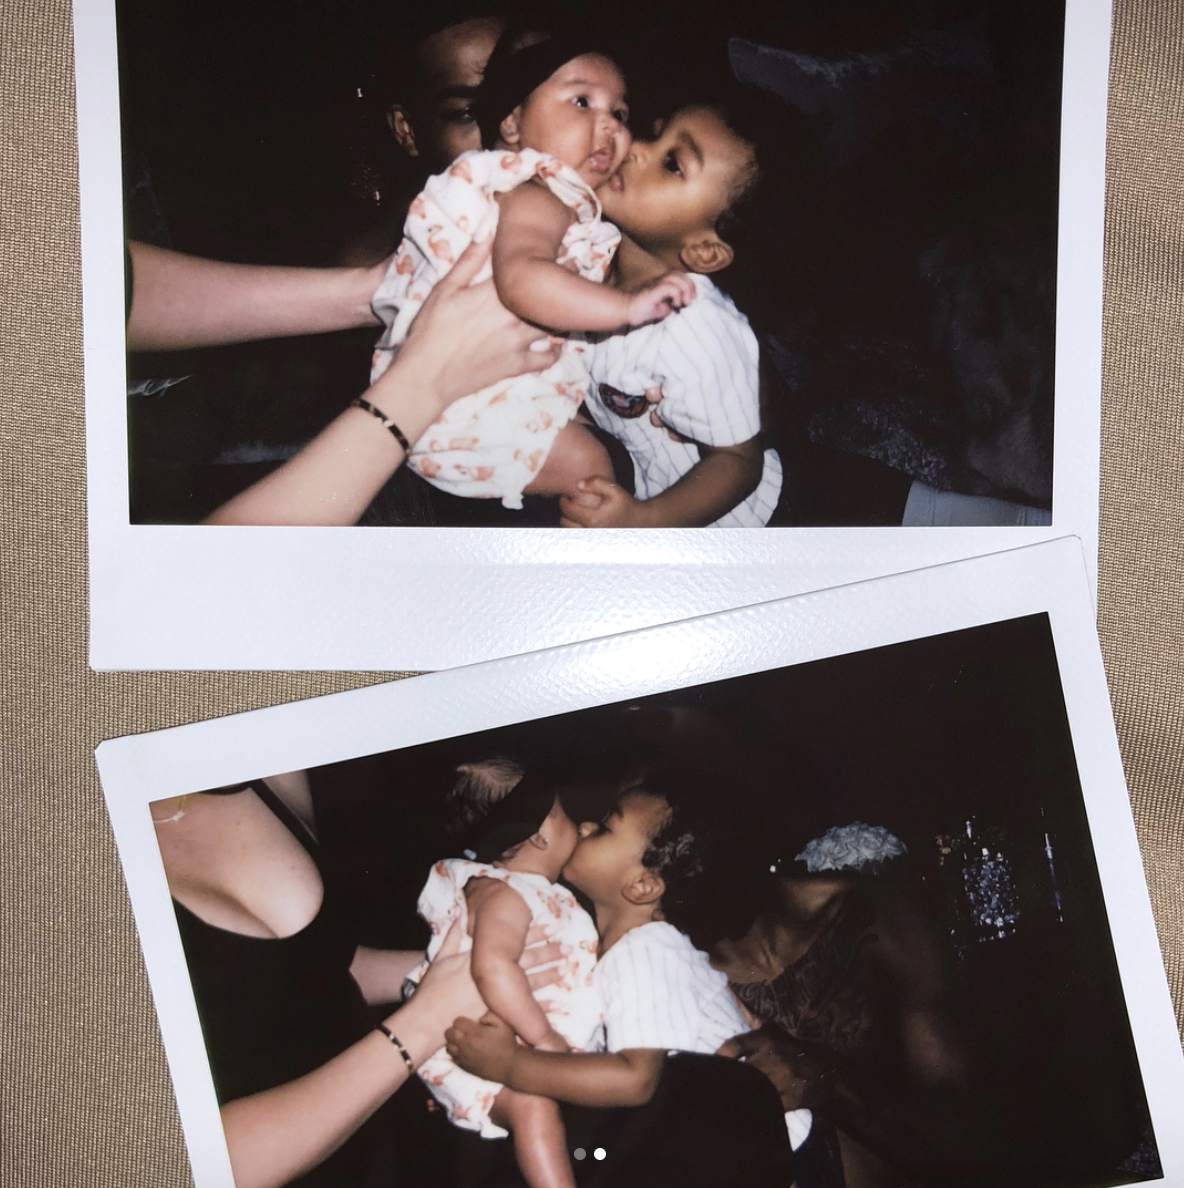 Here are all of the adorable posts we've seen of Khloé Kardashian's daughter, True.